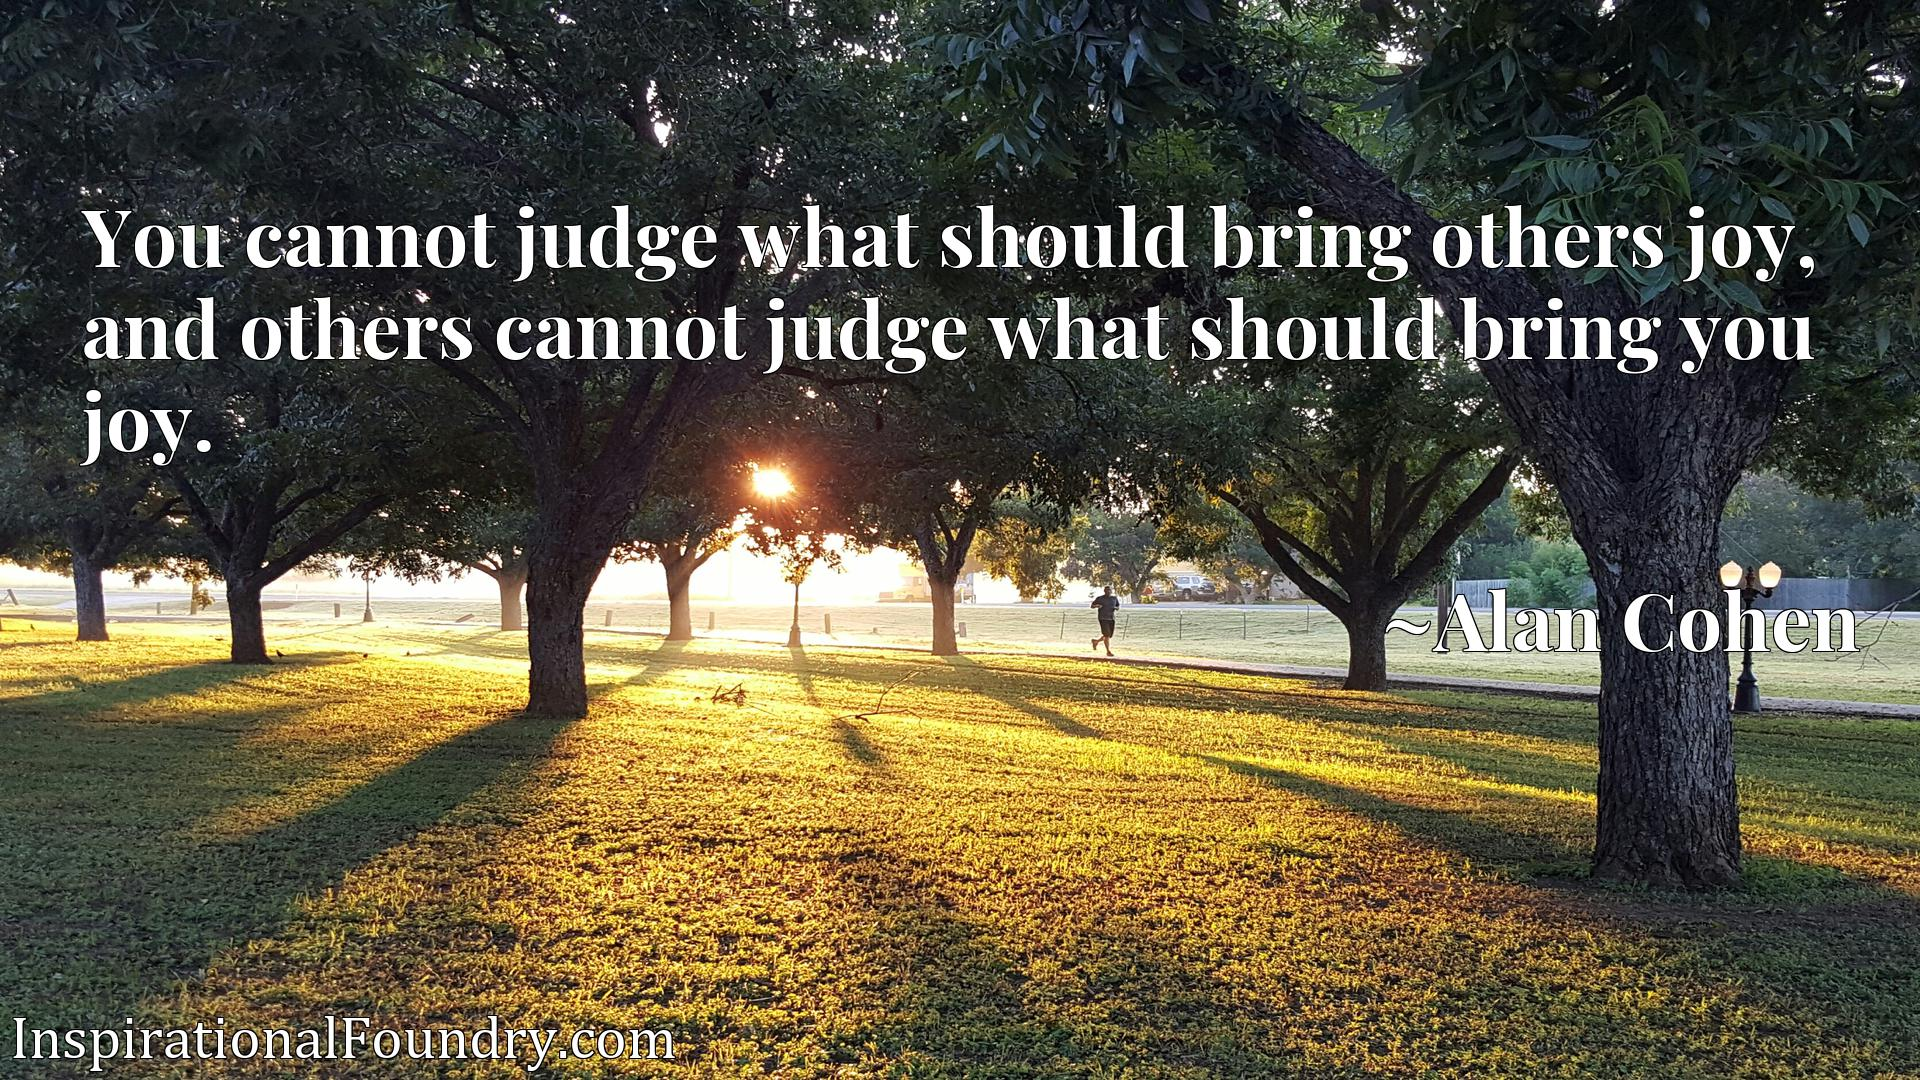 You cannot judge what should bring others joy, and others cannot judge what should bring you joy.